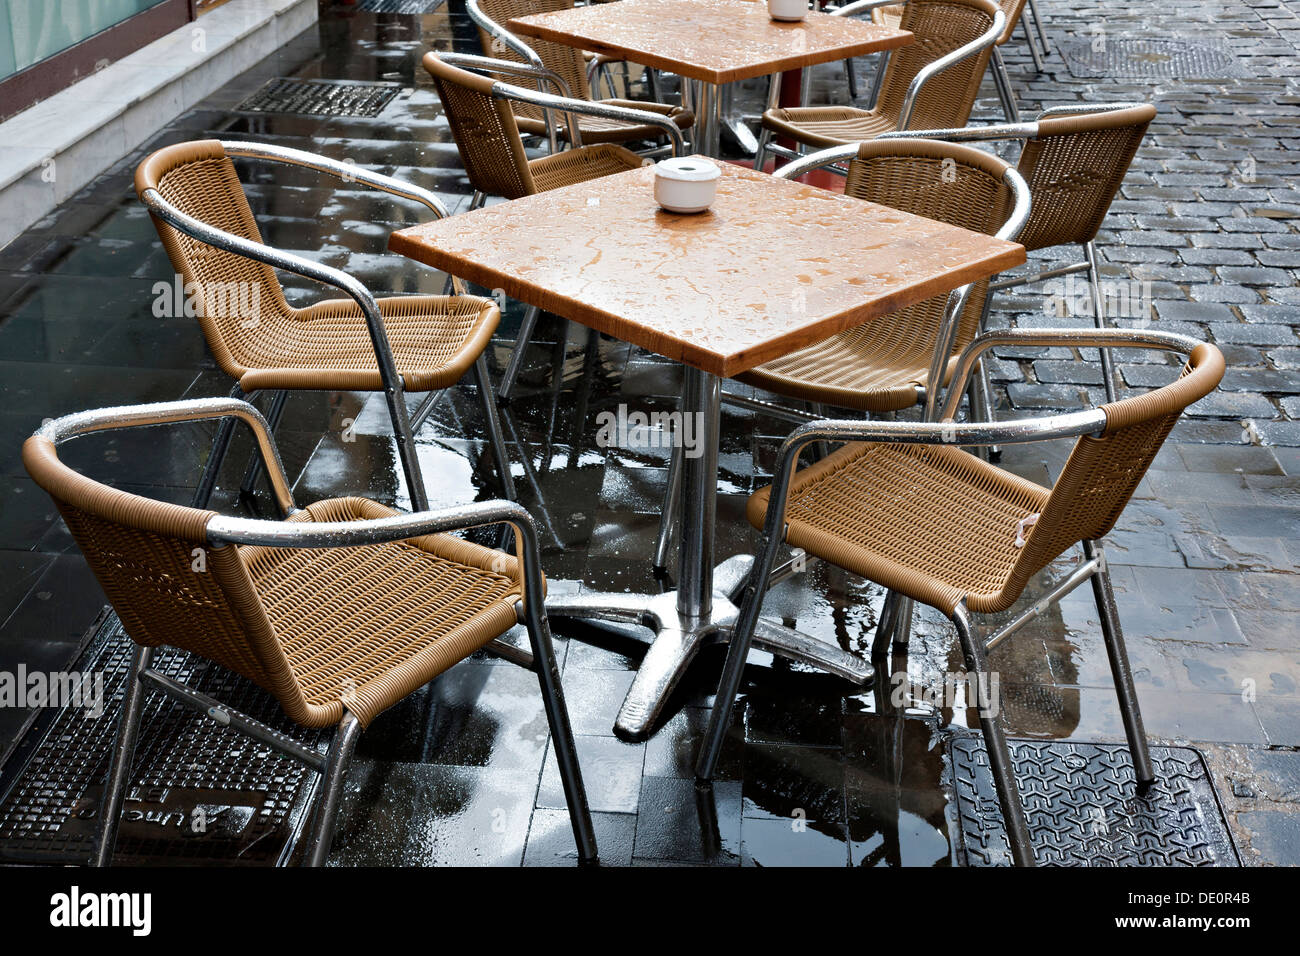 Wet bistro table and chairs, Las Palmas, Gran Canaria, Spain - Stock Image